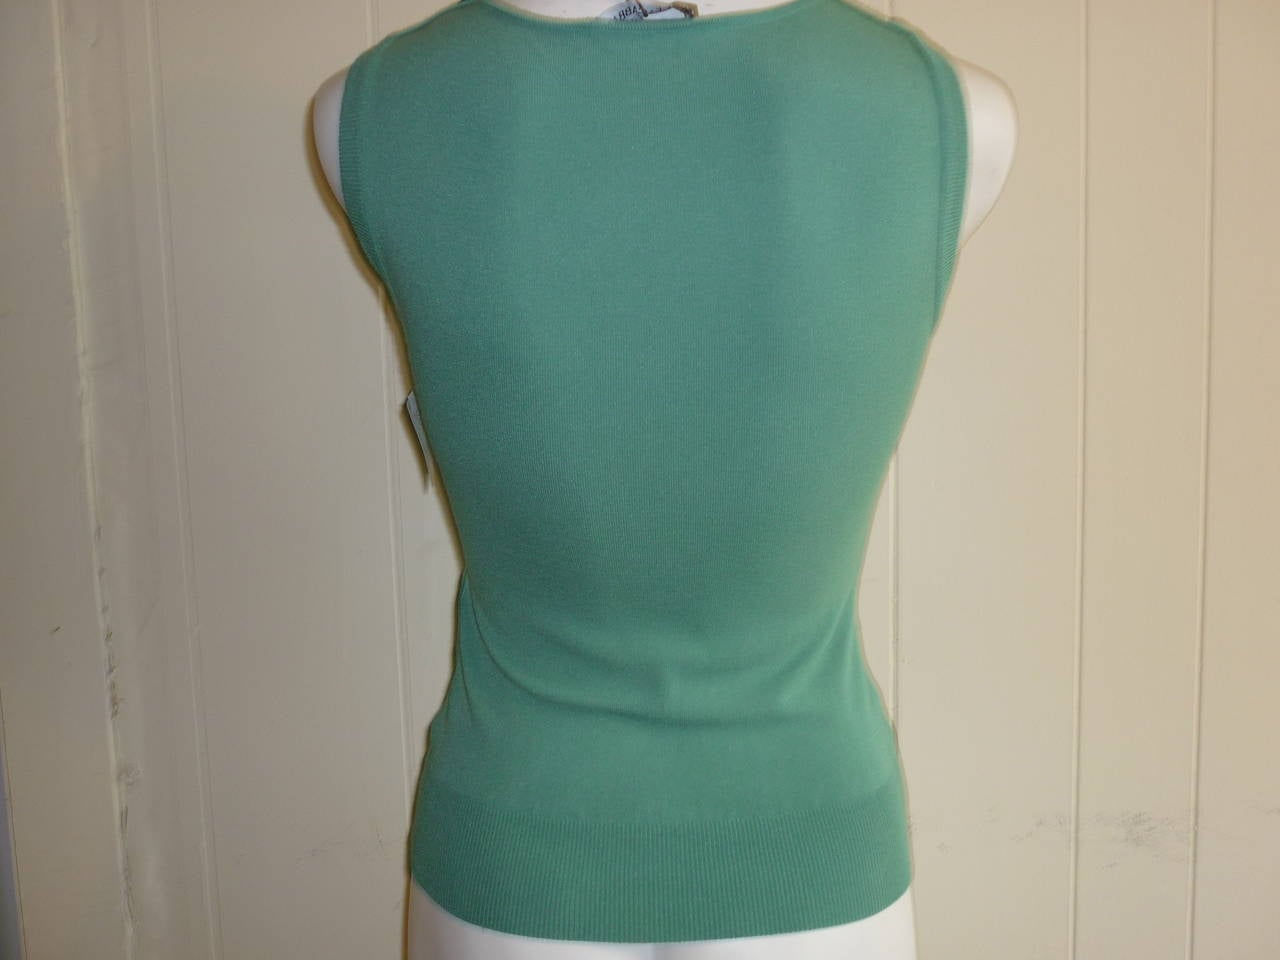 Dolce & Gabbana Soft Green Top NWT 40 ITL 3